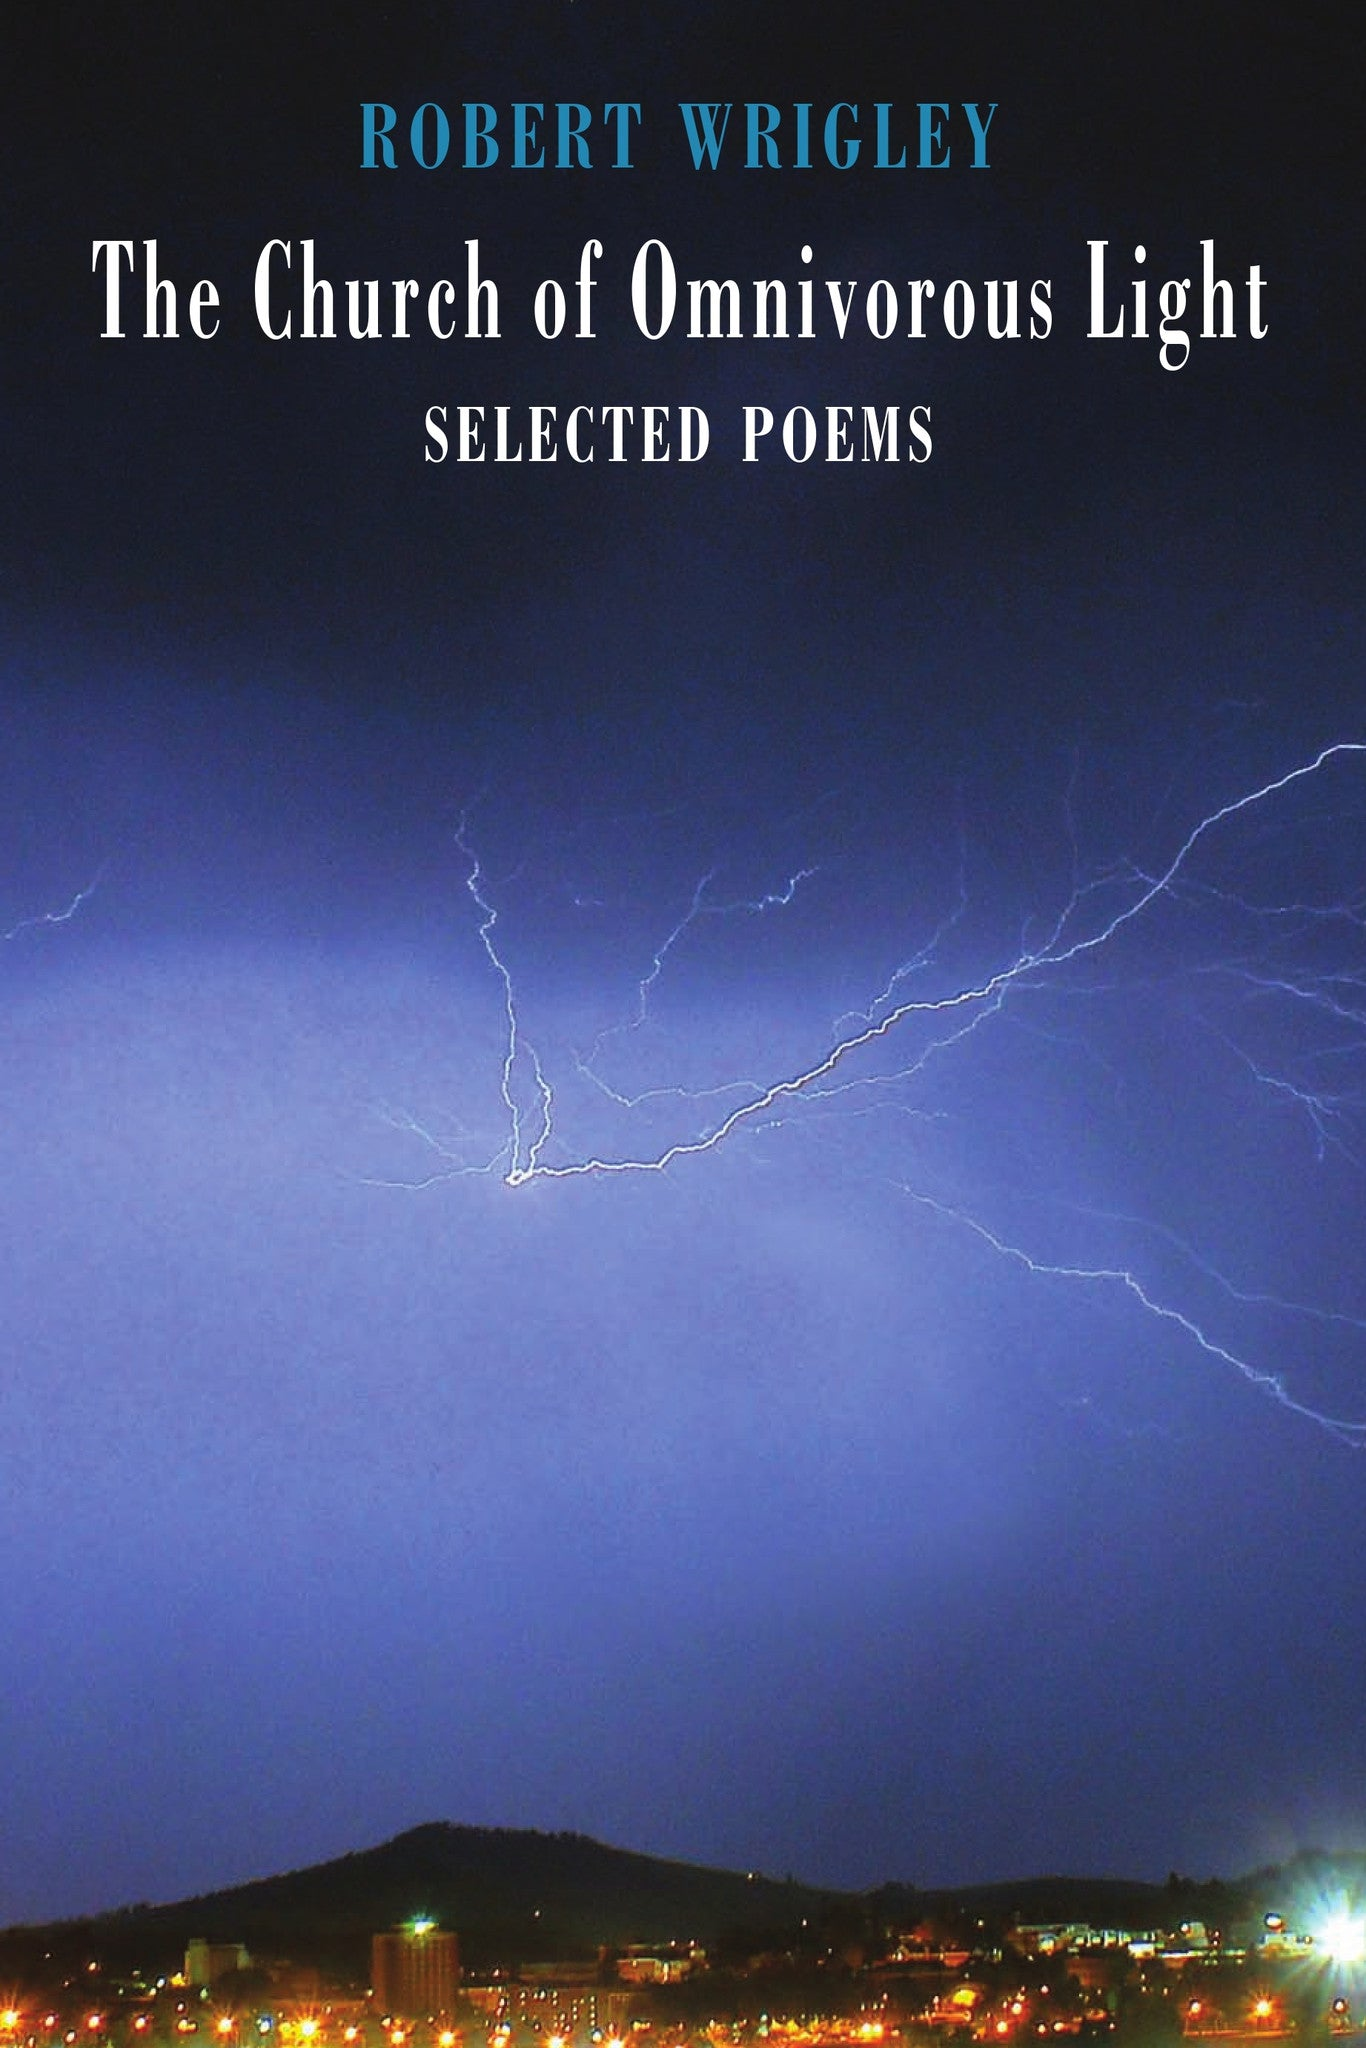 The Church of Omniverous Light: Selected Poems